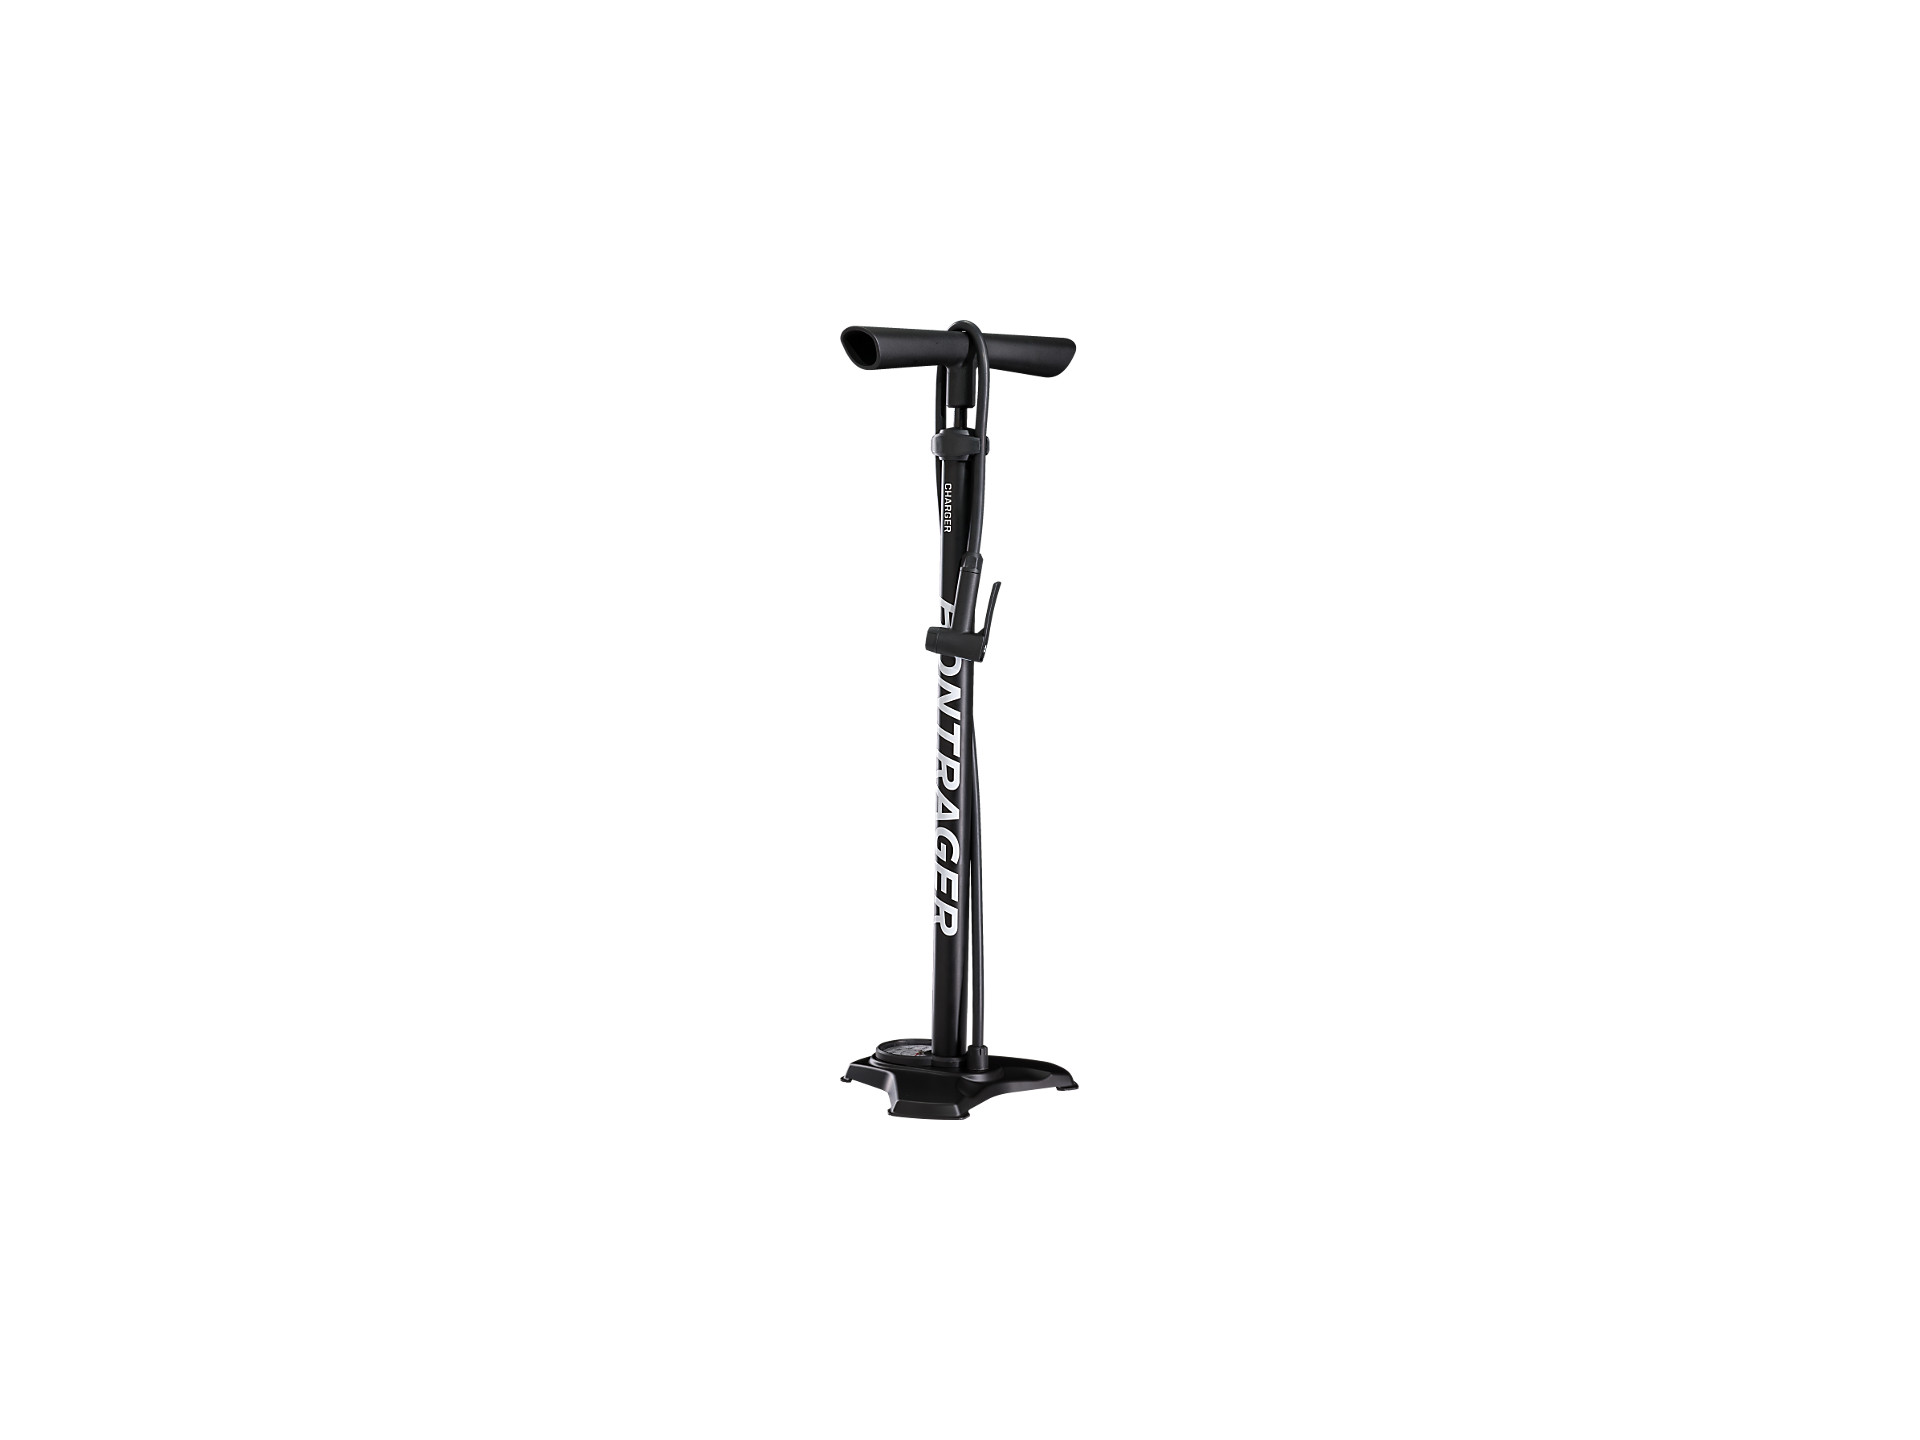 Bontrager Charger Floor Pump Trek Bikes